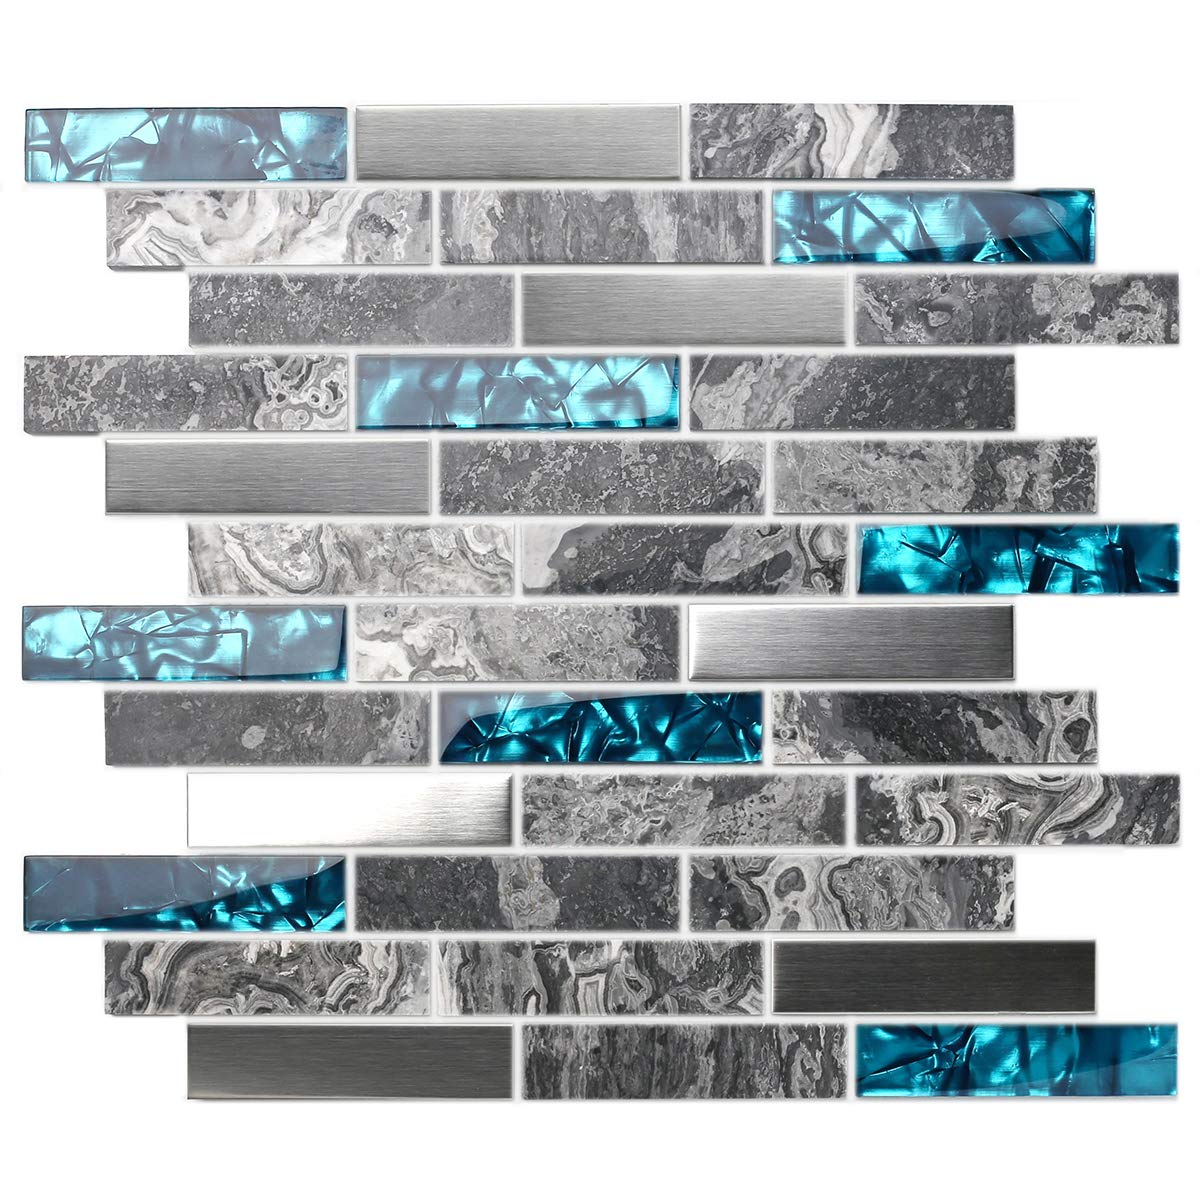 TST Stone Glass Tile Gray Smooth Polished Marble Teal Blue Crystal Glass Brushed Steel Accent Wall Backsplash Border Art Mosaic Tile TSTMGT001 (5 Square Feet)